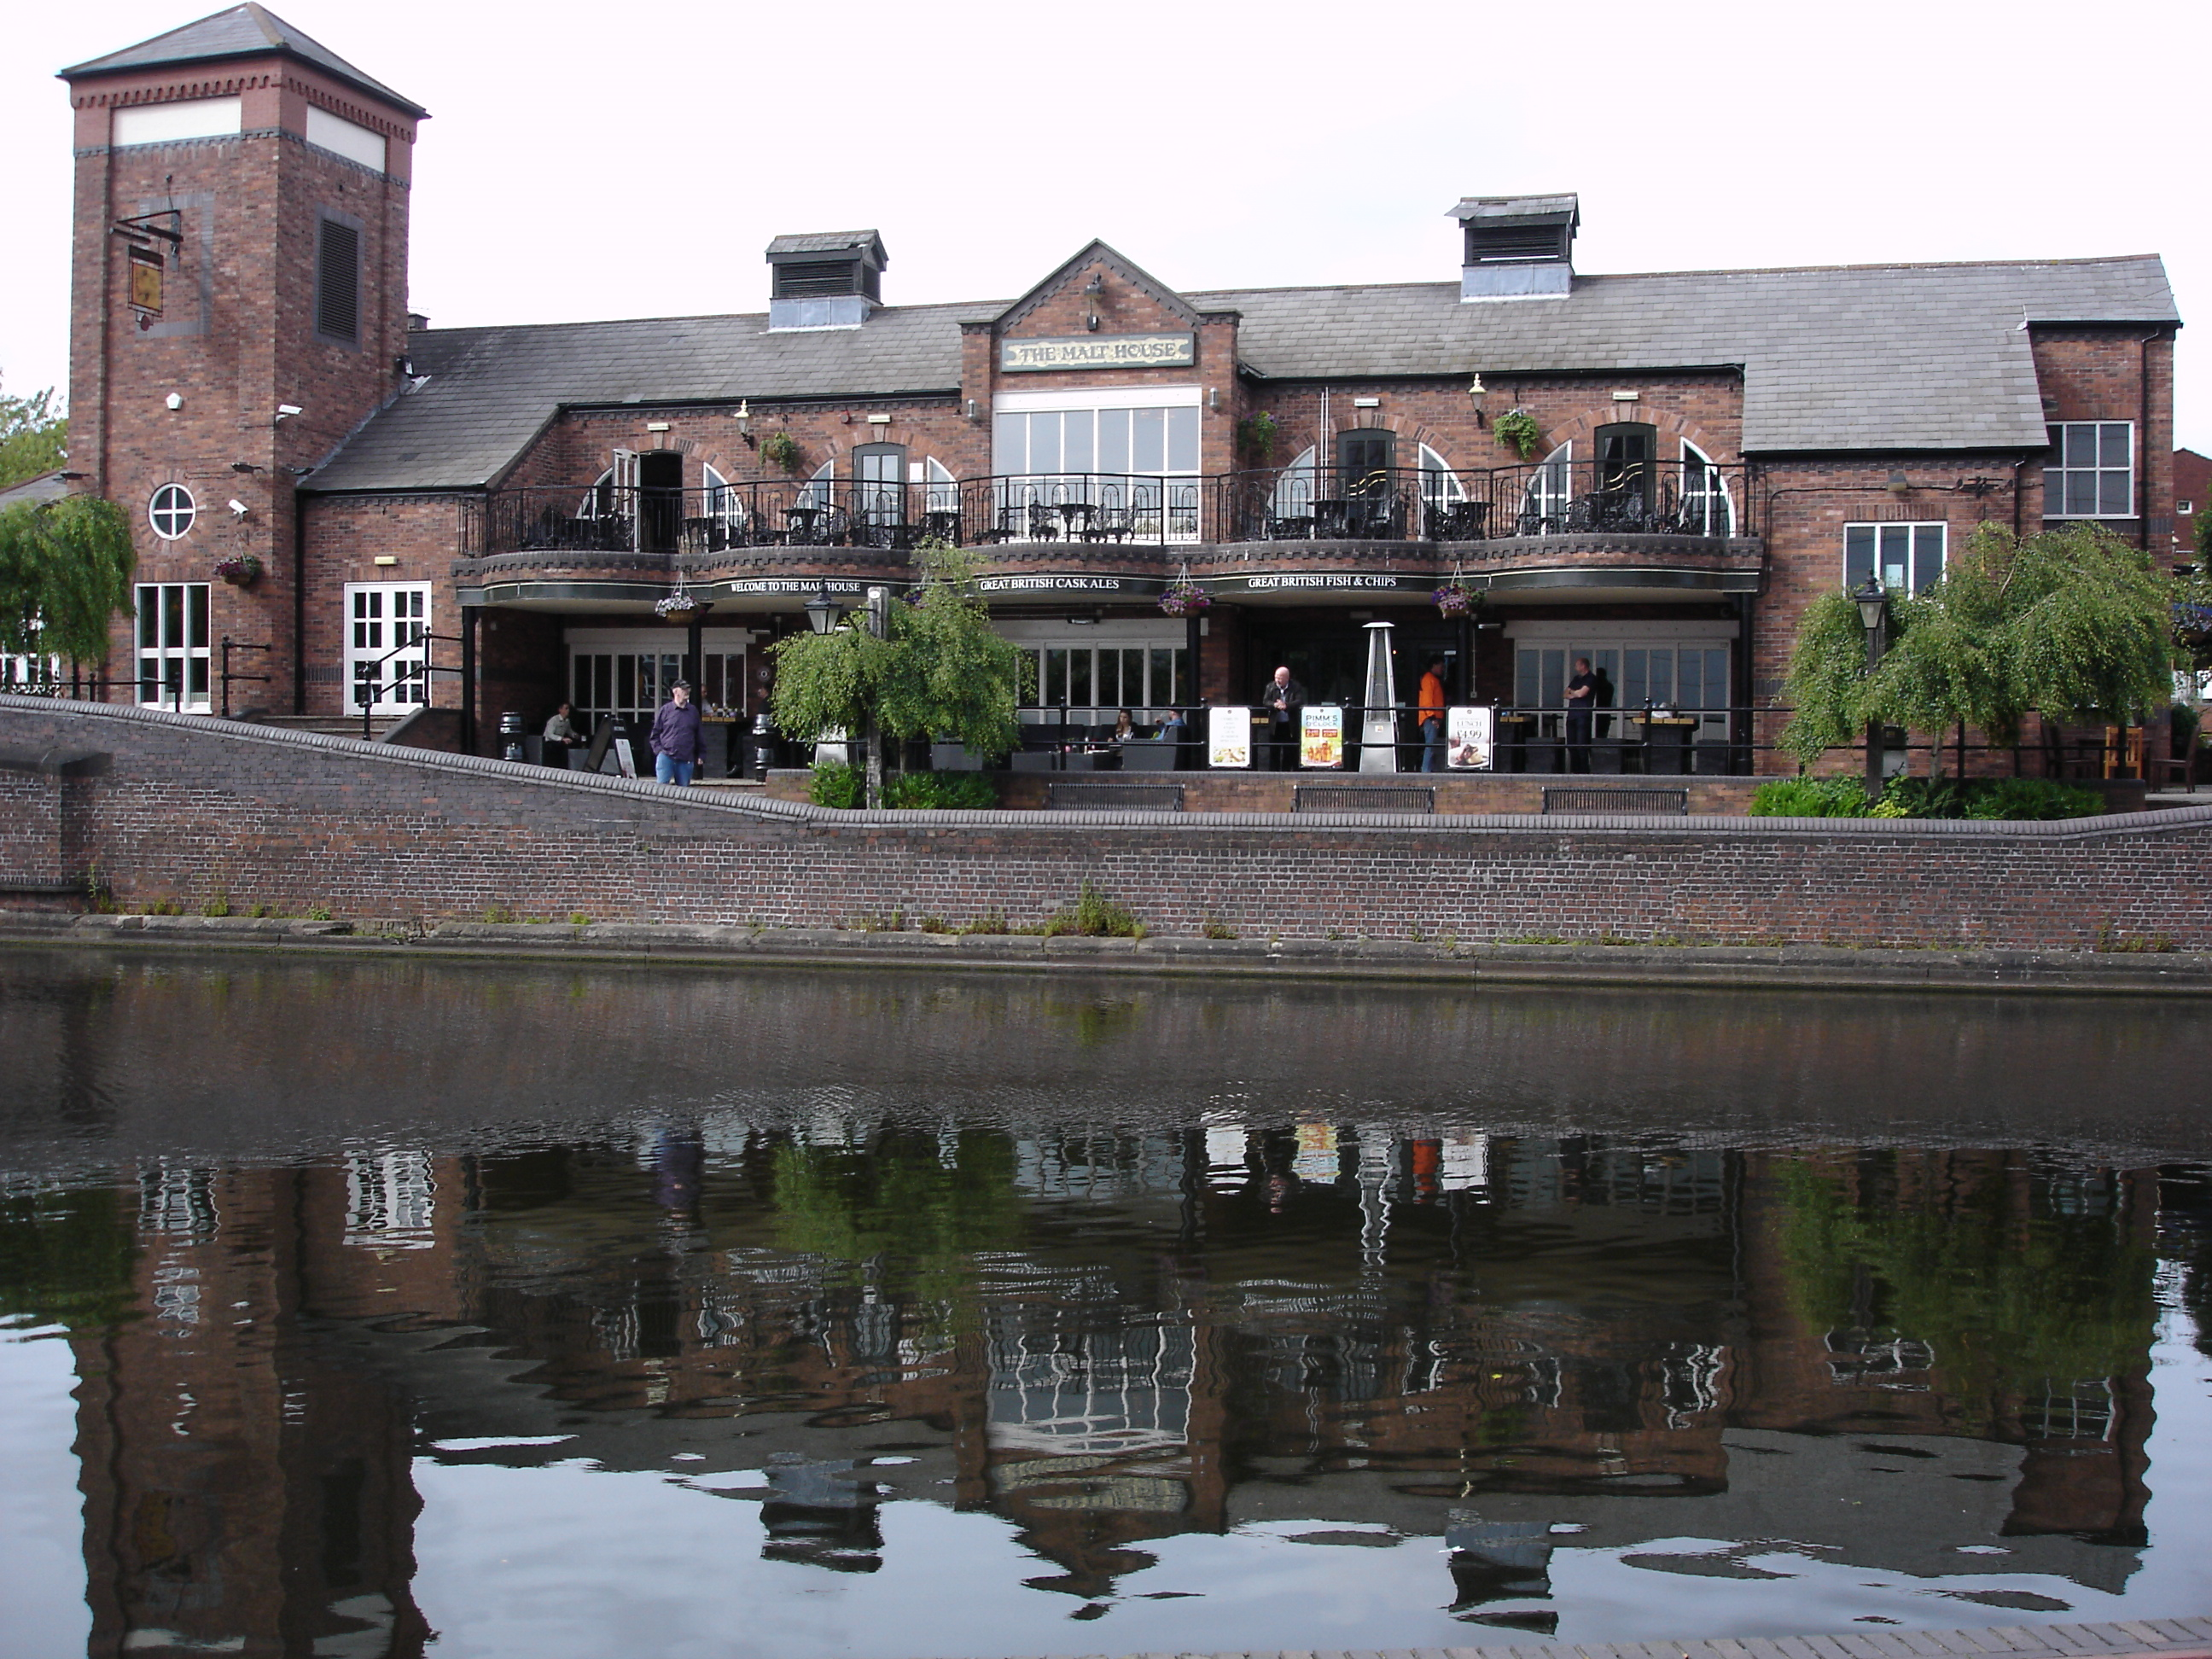 The Malt House with reflection